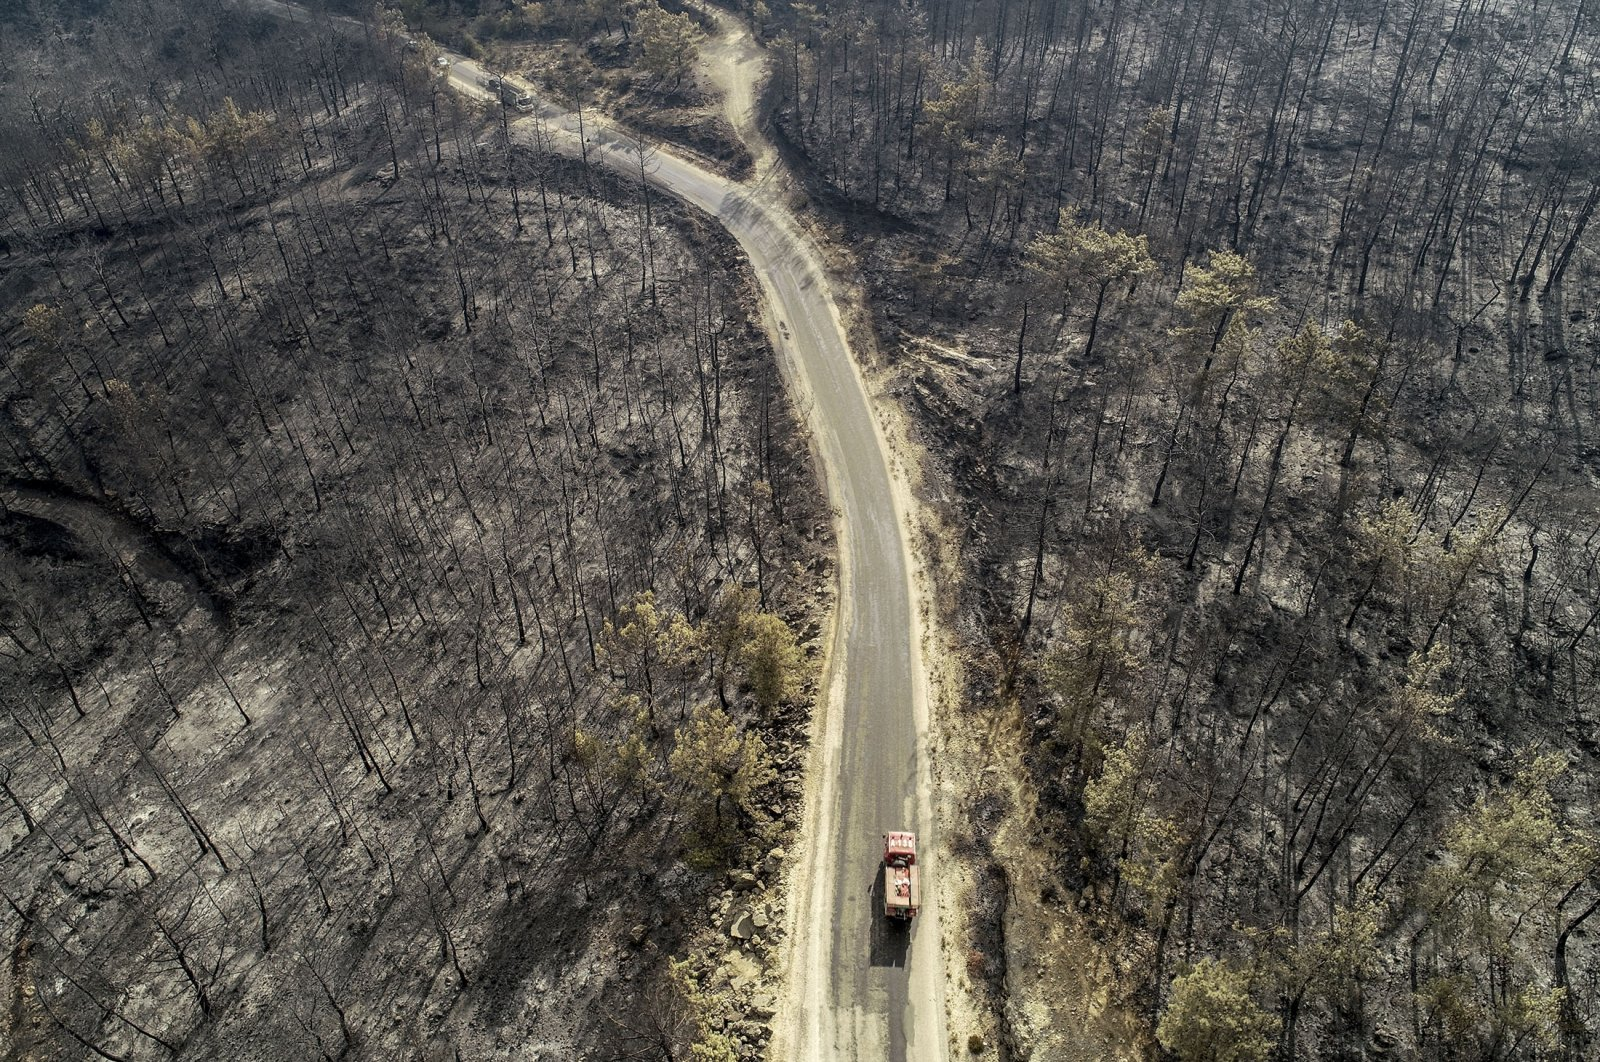 An aerial view shows a fire truck driving along a road surrounded by a burnt forest in the Manavgat district of Antalya, Turkey, July 31, 2021. (AA Photo)